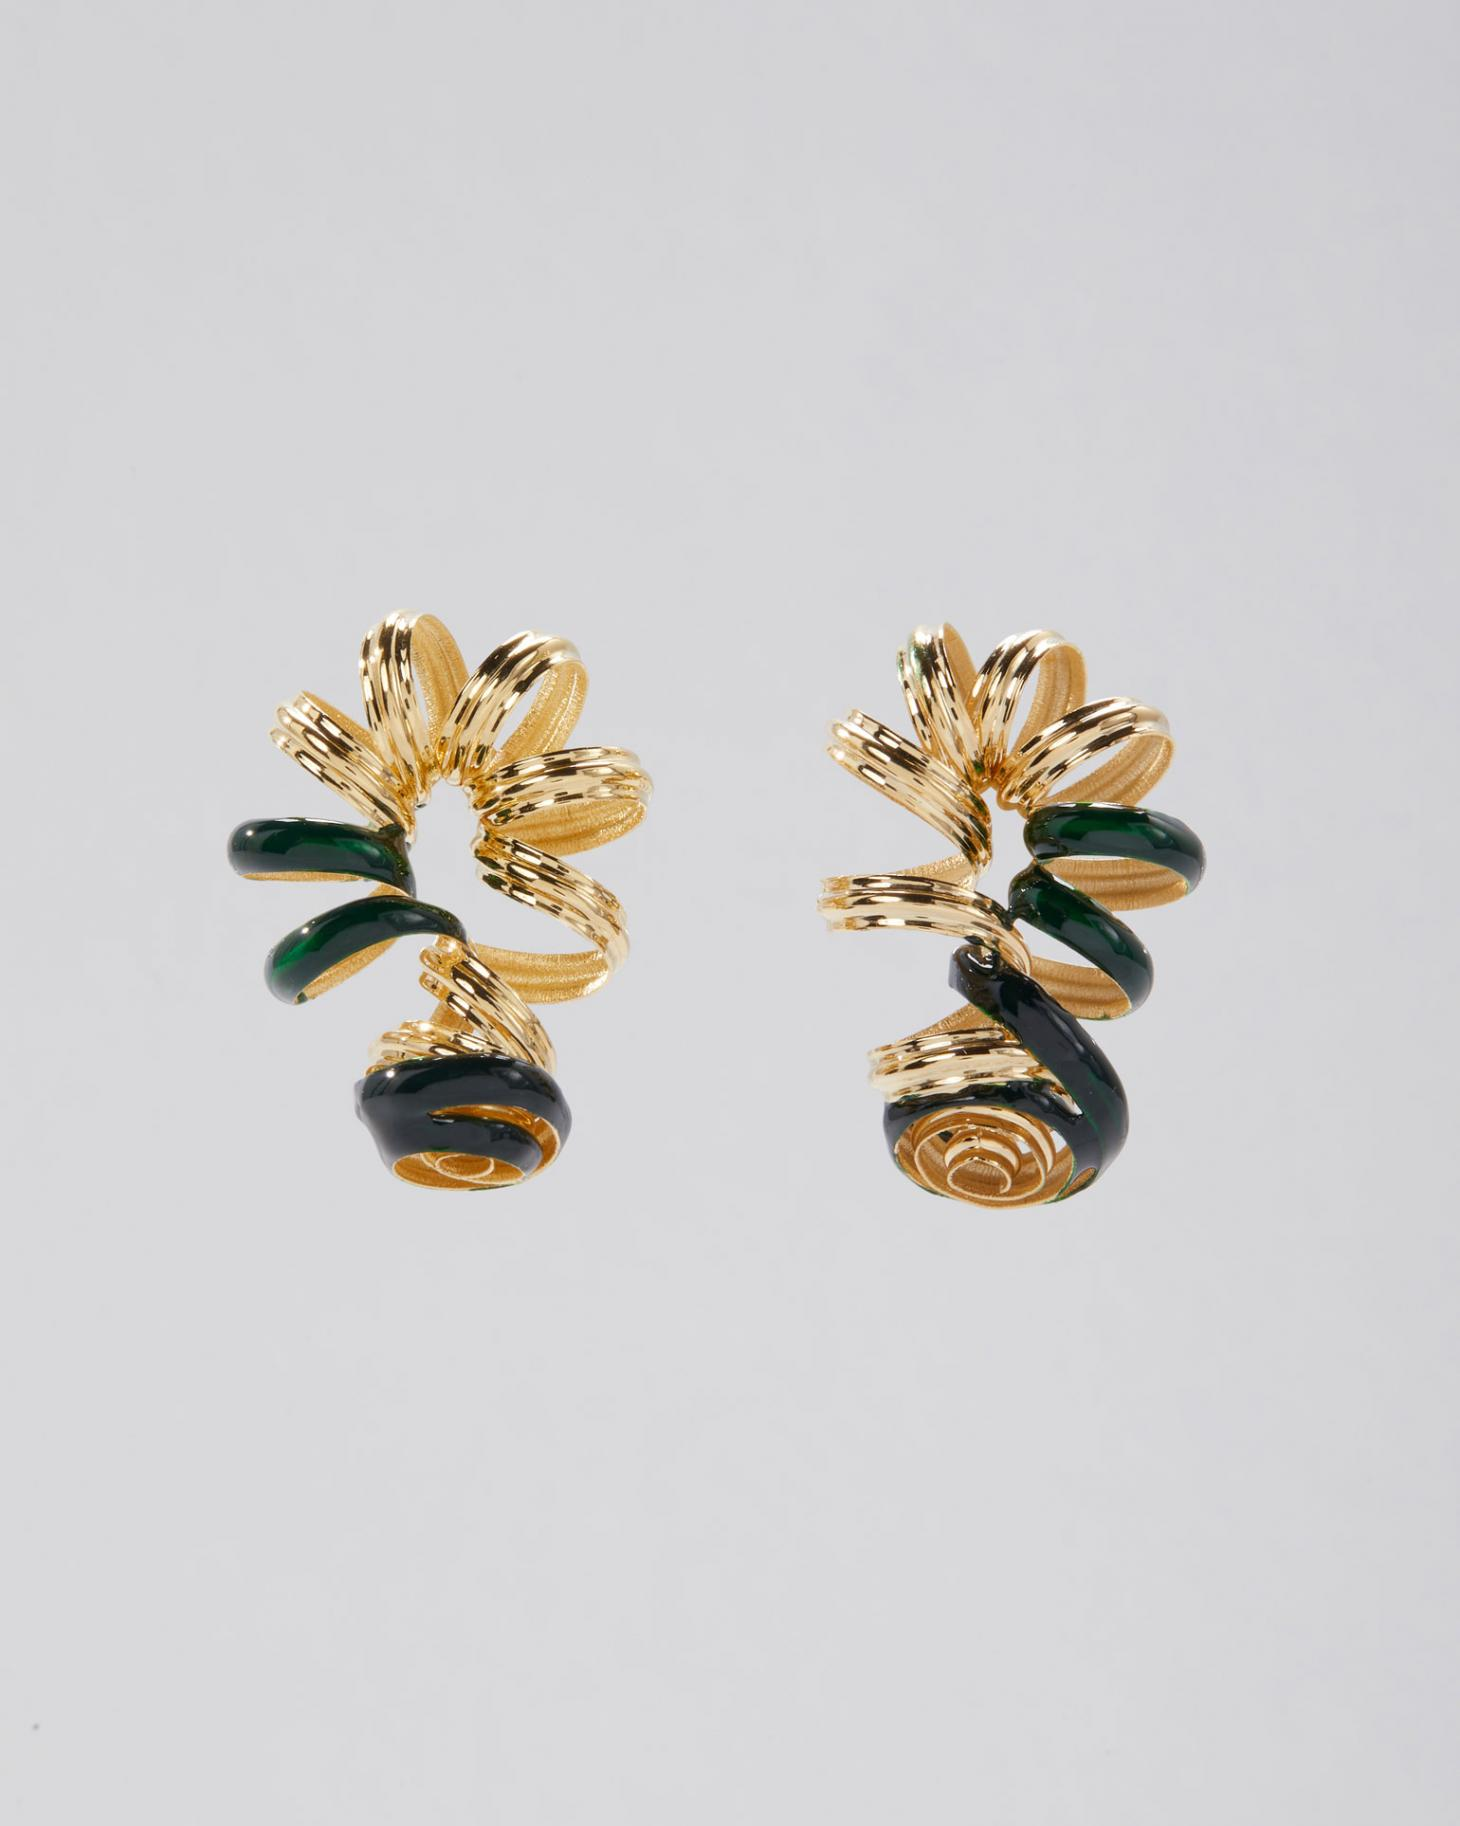 Gold-coated brass curly earrings with green dots on